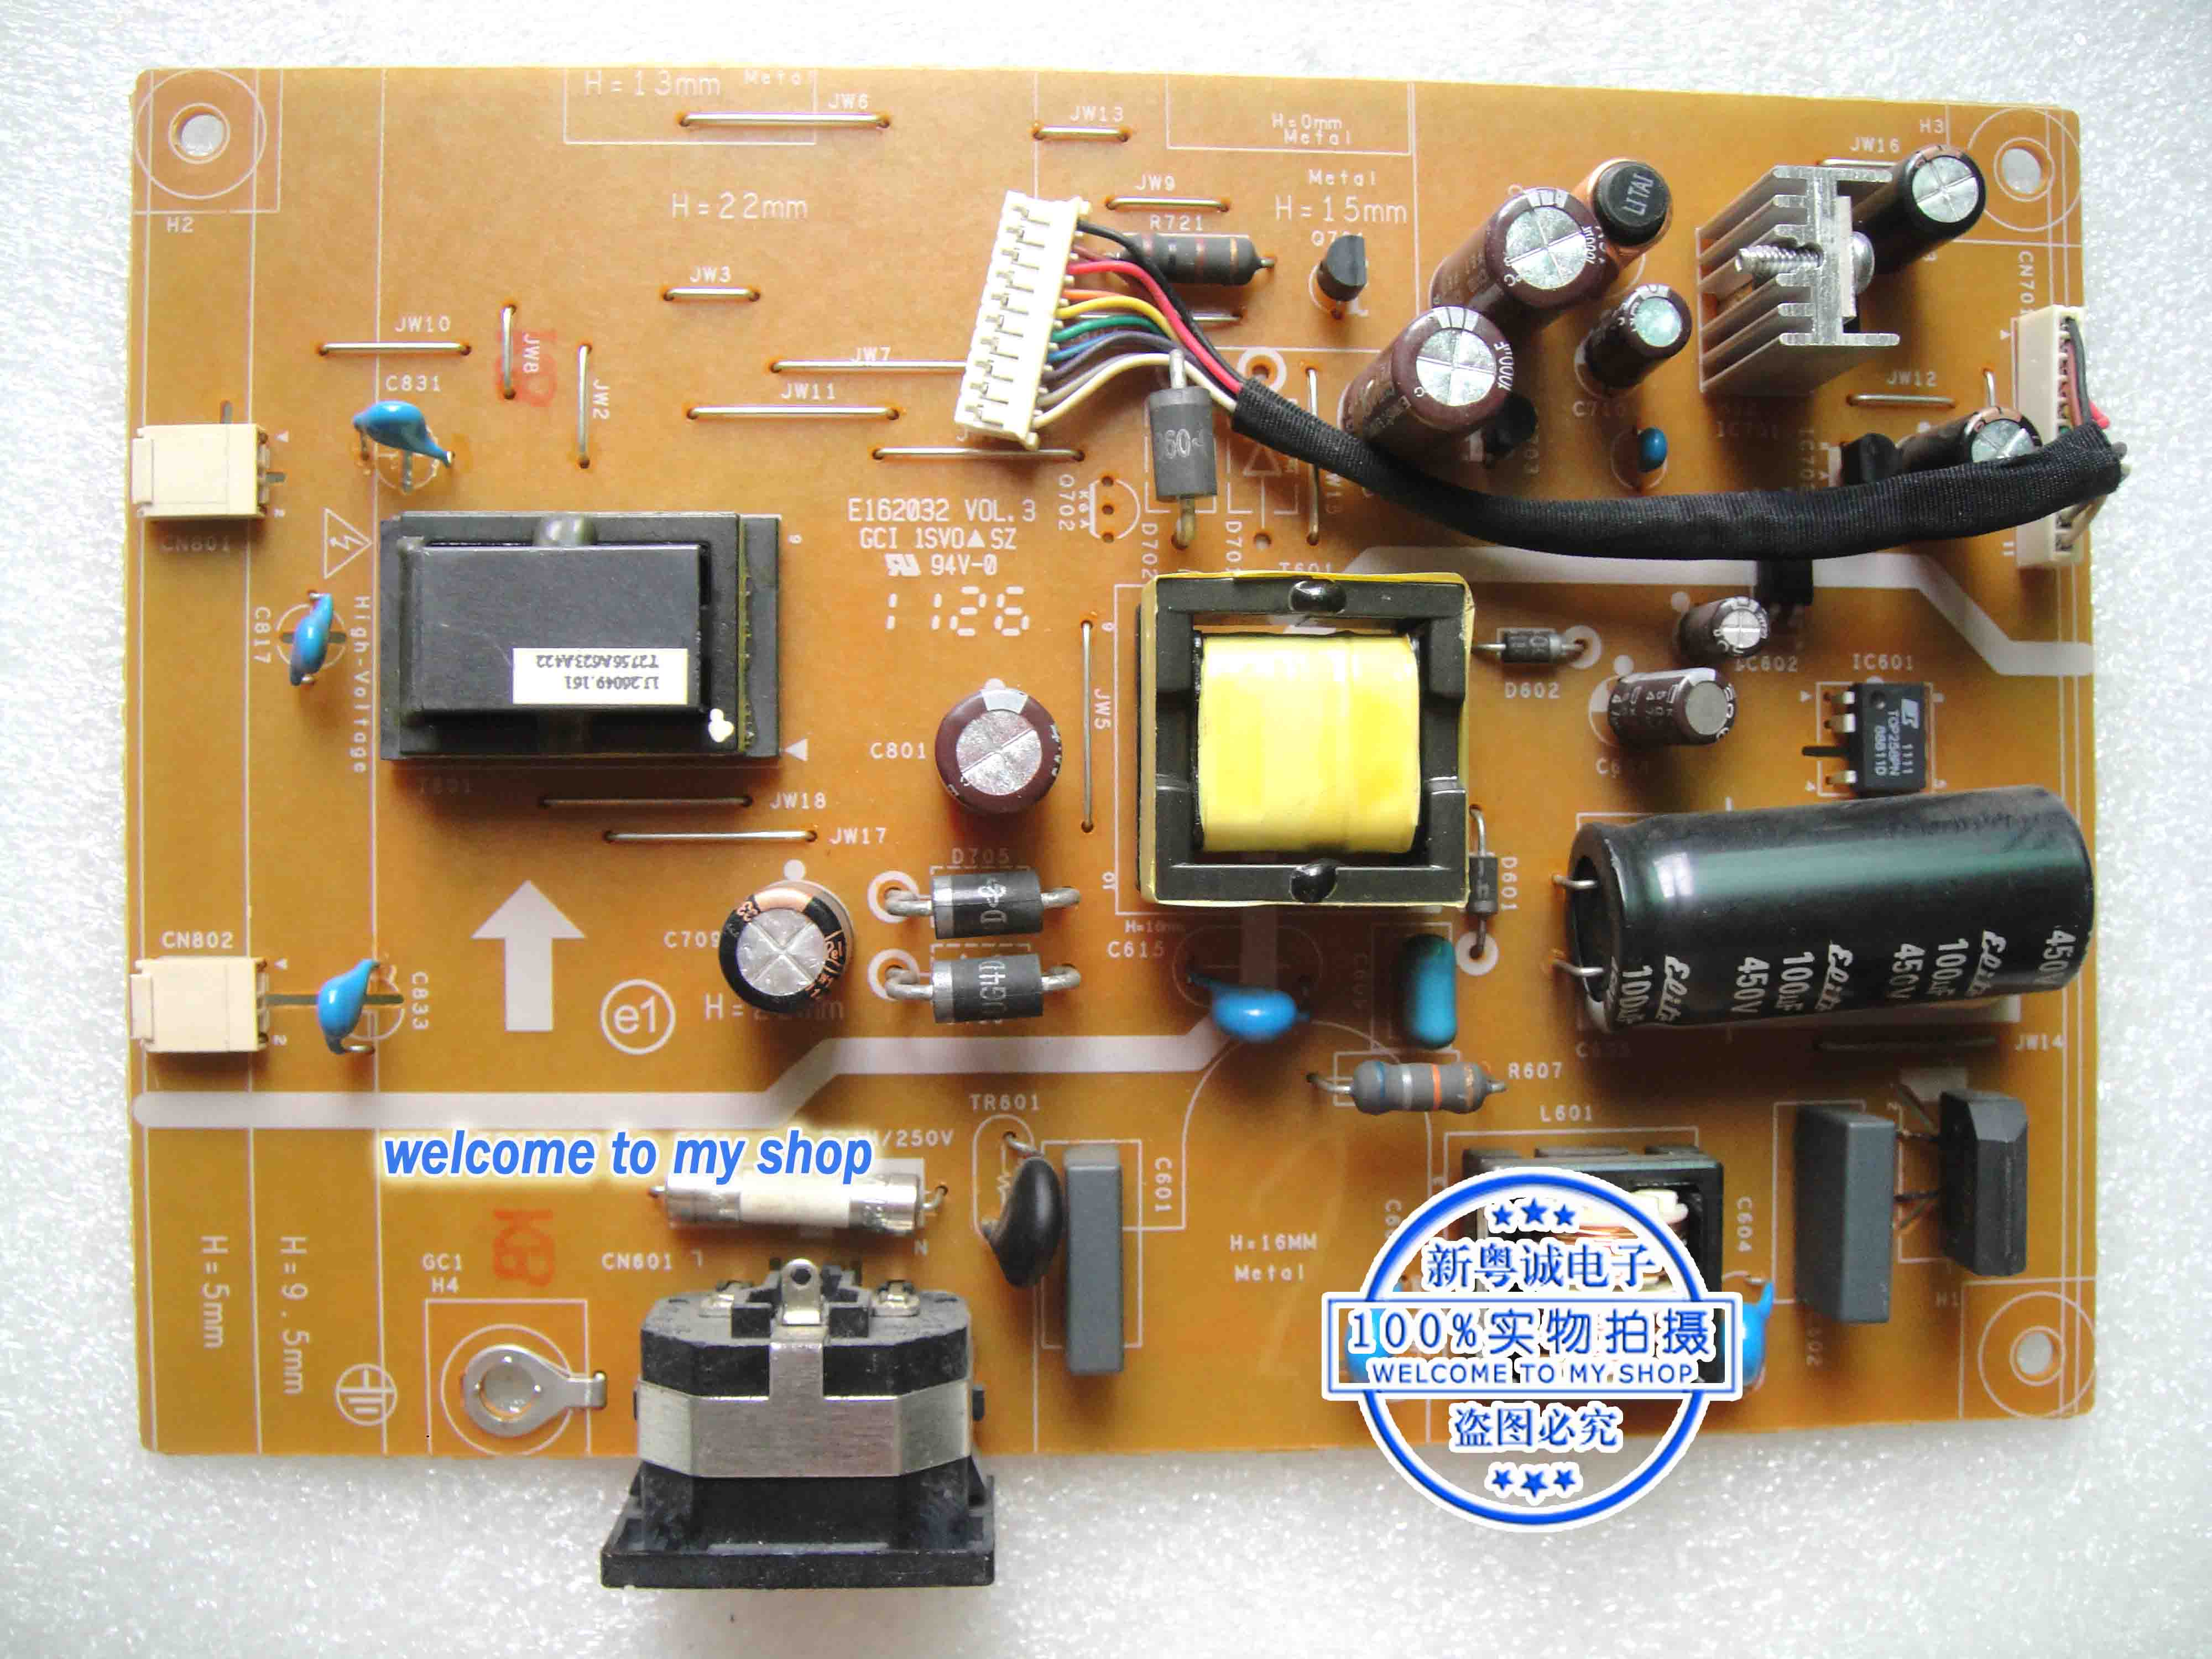 Benq Lcd G922hd Main Power Supply Schematic Diagram Electro Help